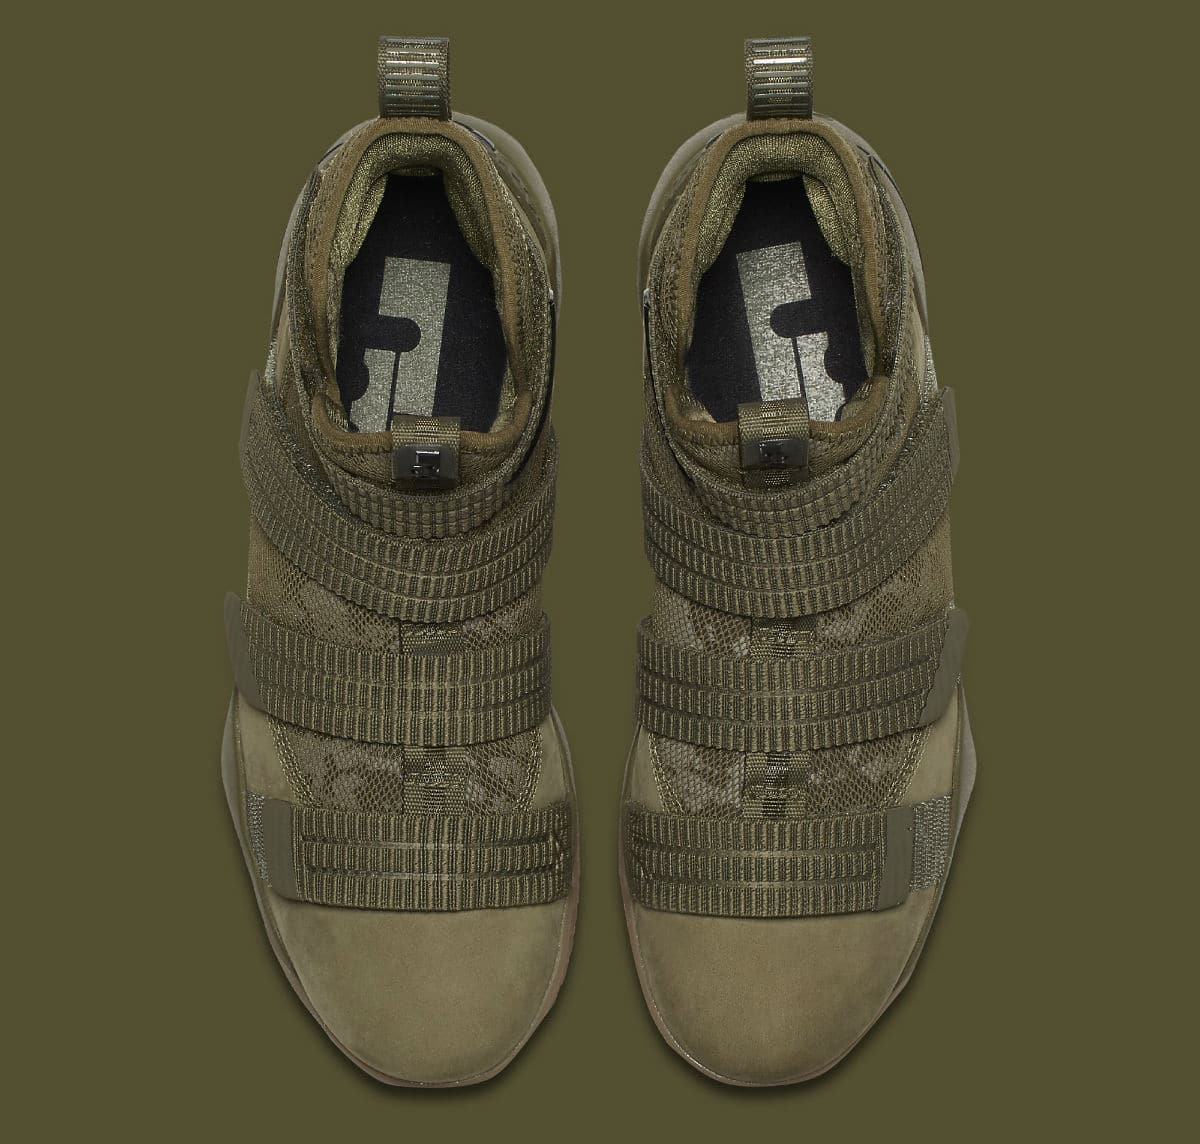 best sneakers 8c9cf 6c713 The Nike LeBron Soldier 11 Gets an 'Olive' Makeover ...